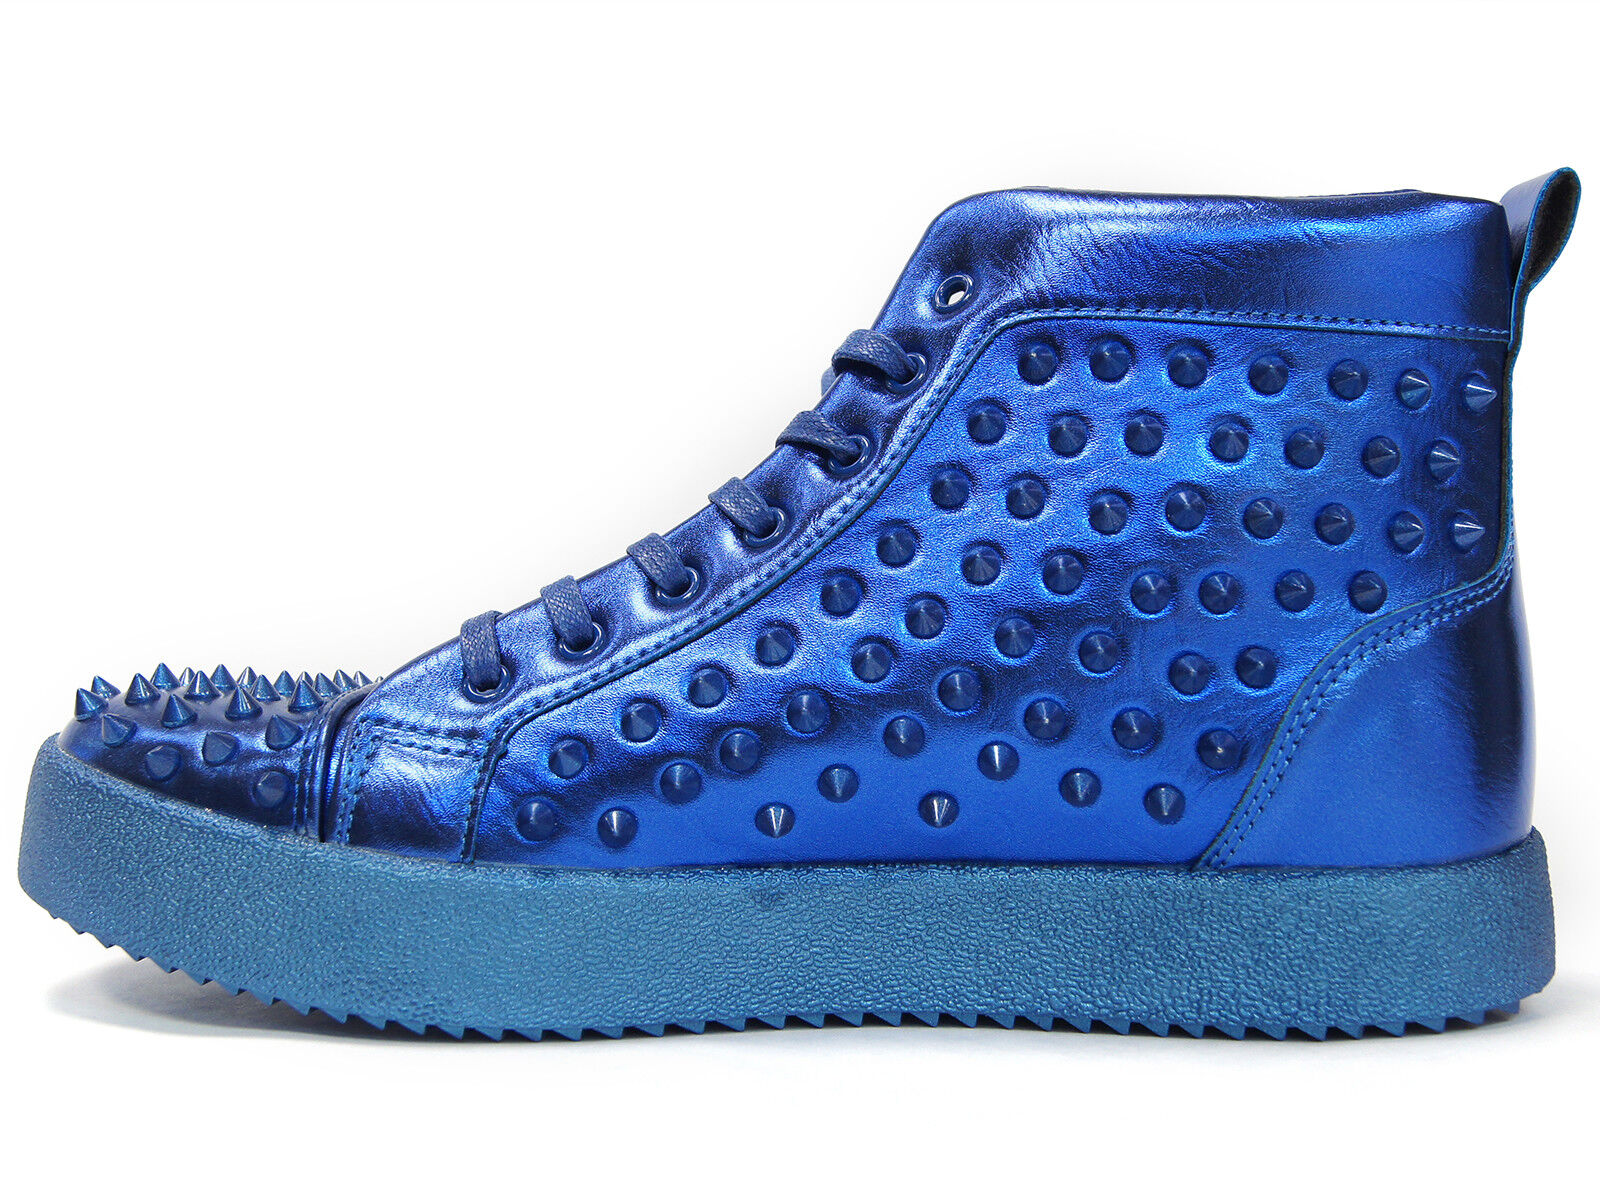 Fiesso Mens Blau PU Leather Leather Leather Studded Lace Up High Top Turnschuhe schuhe 1e5067